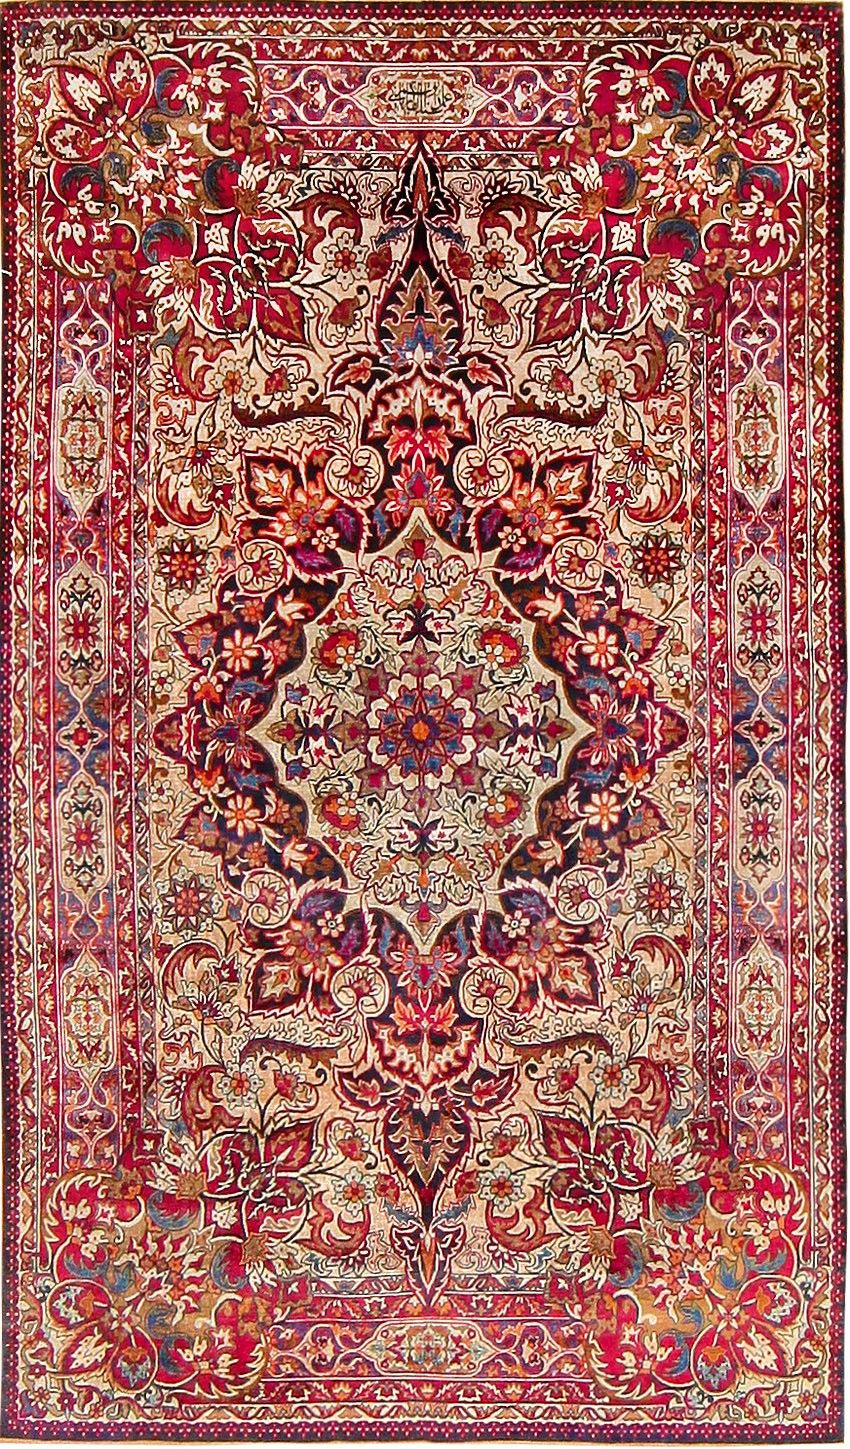 Antique silk persian kermani rug 47591 main image by for Home inspired by india rug